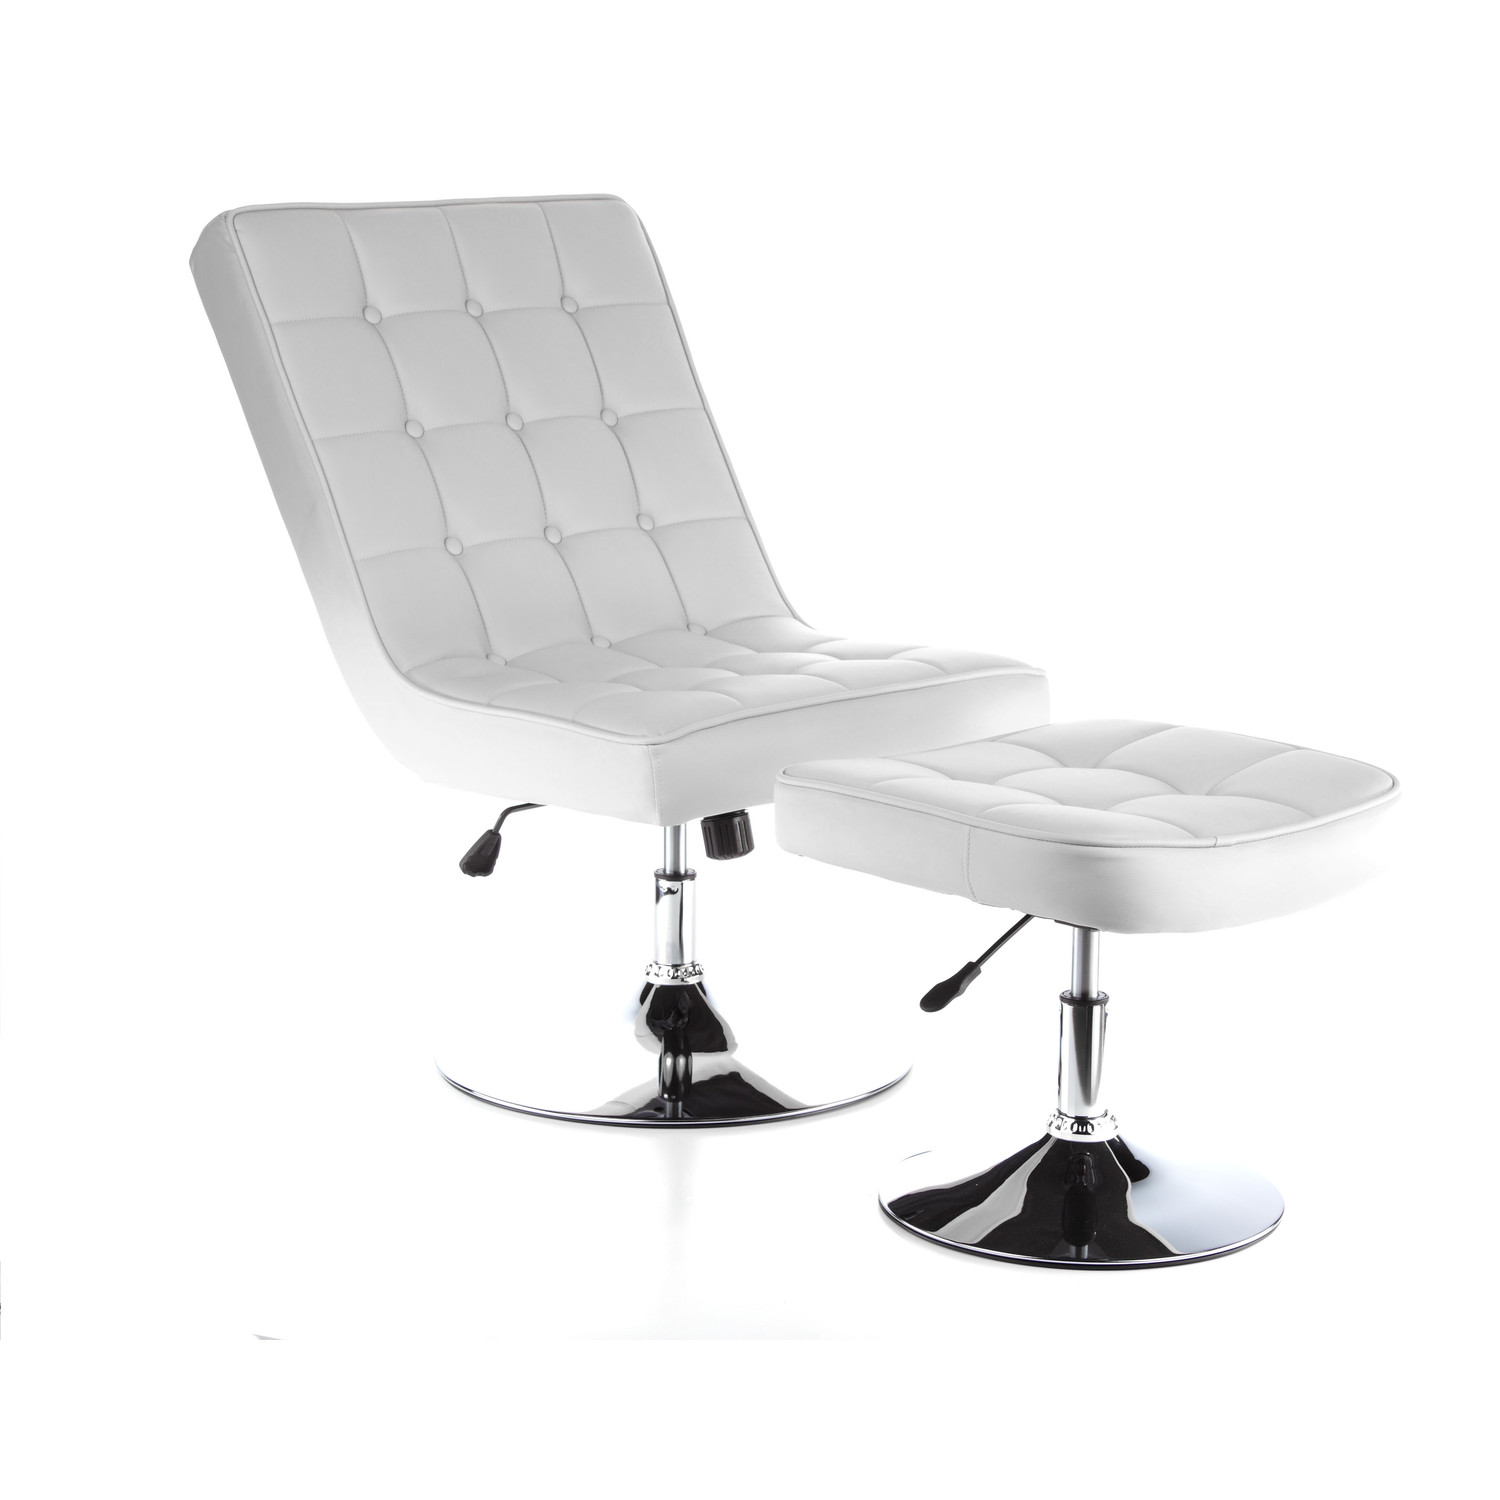 Sill n div n reclinable relax plus en dos piezas blanco for Sillon reclinable blanco